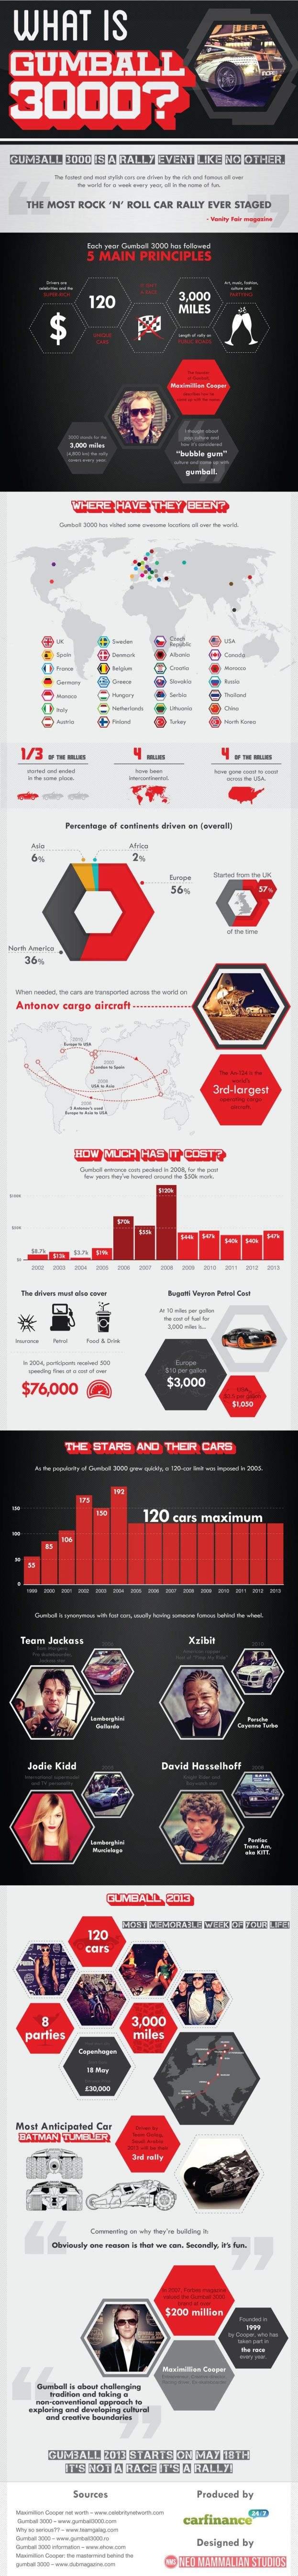 Gumball 3000 infographic